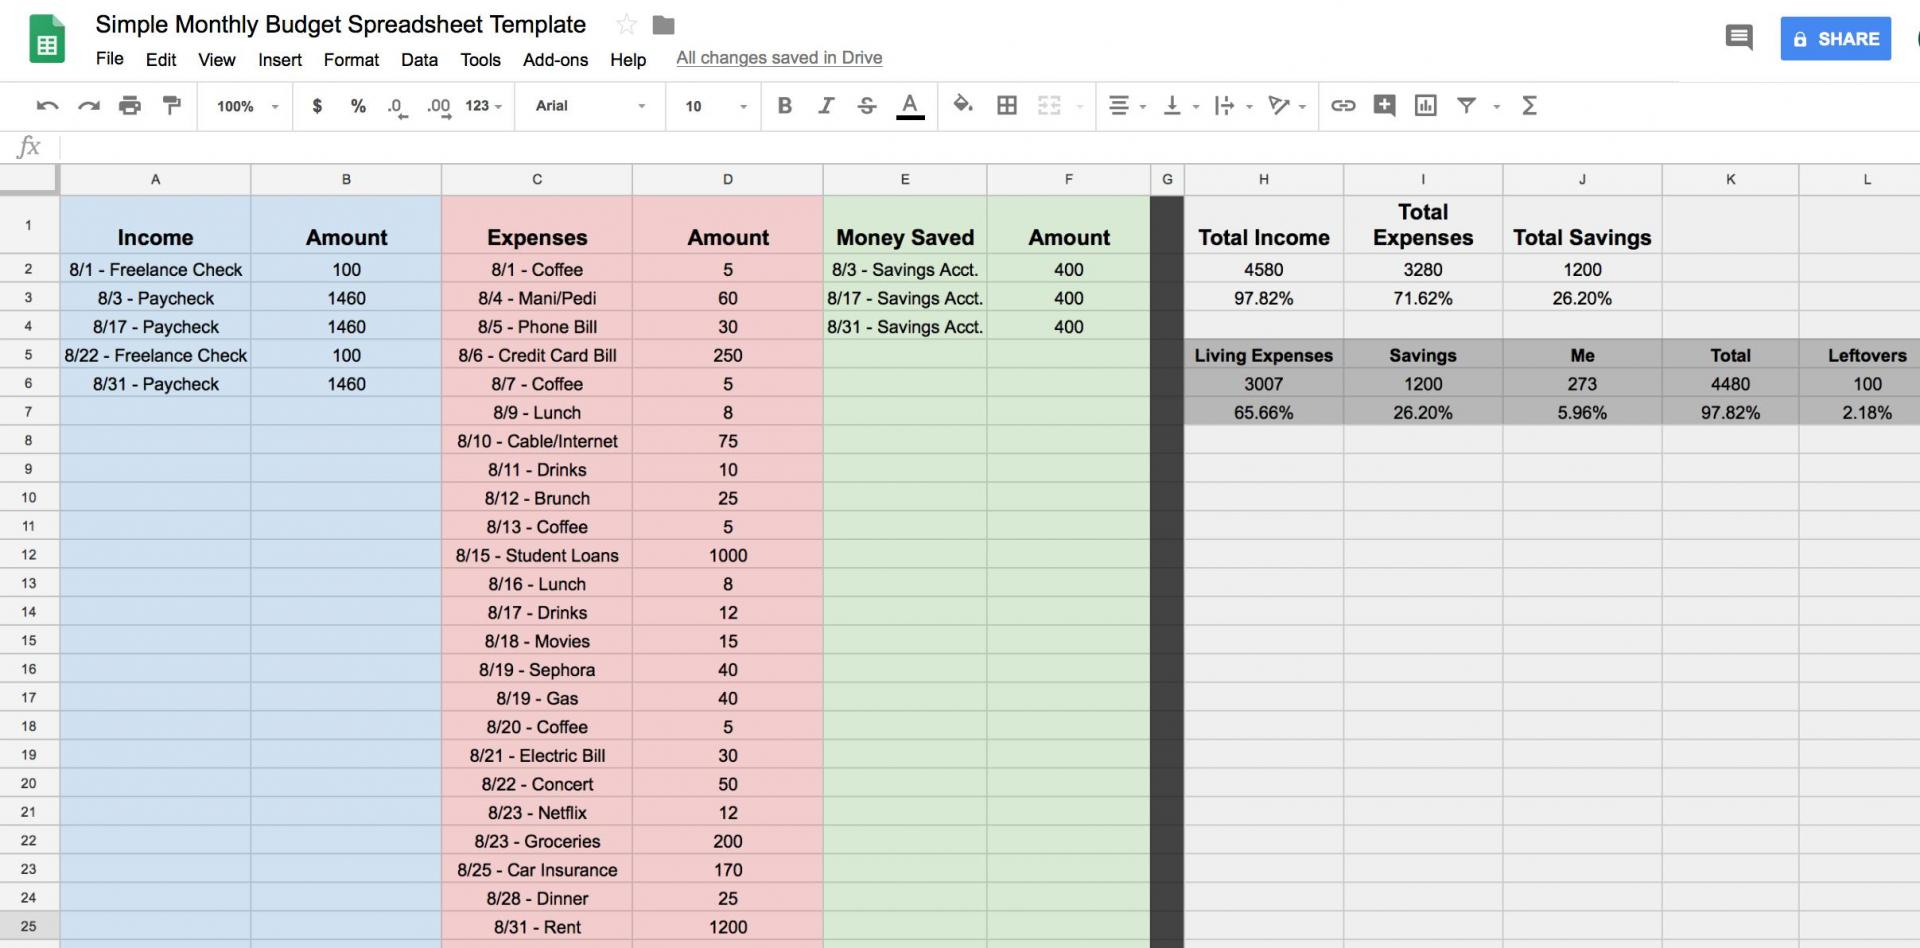 Easy To Use Budget Spreadsheet In How To Create A Budget Spreadsheet In Google Sheets